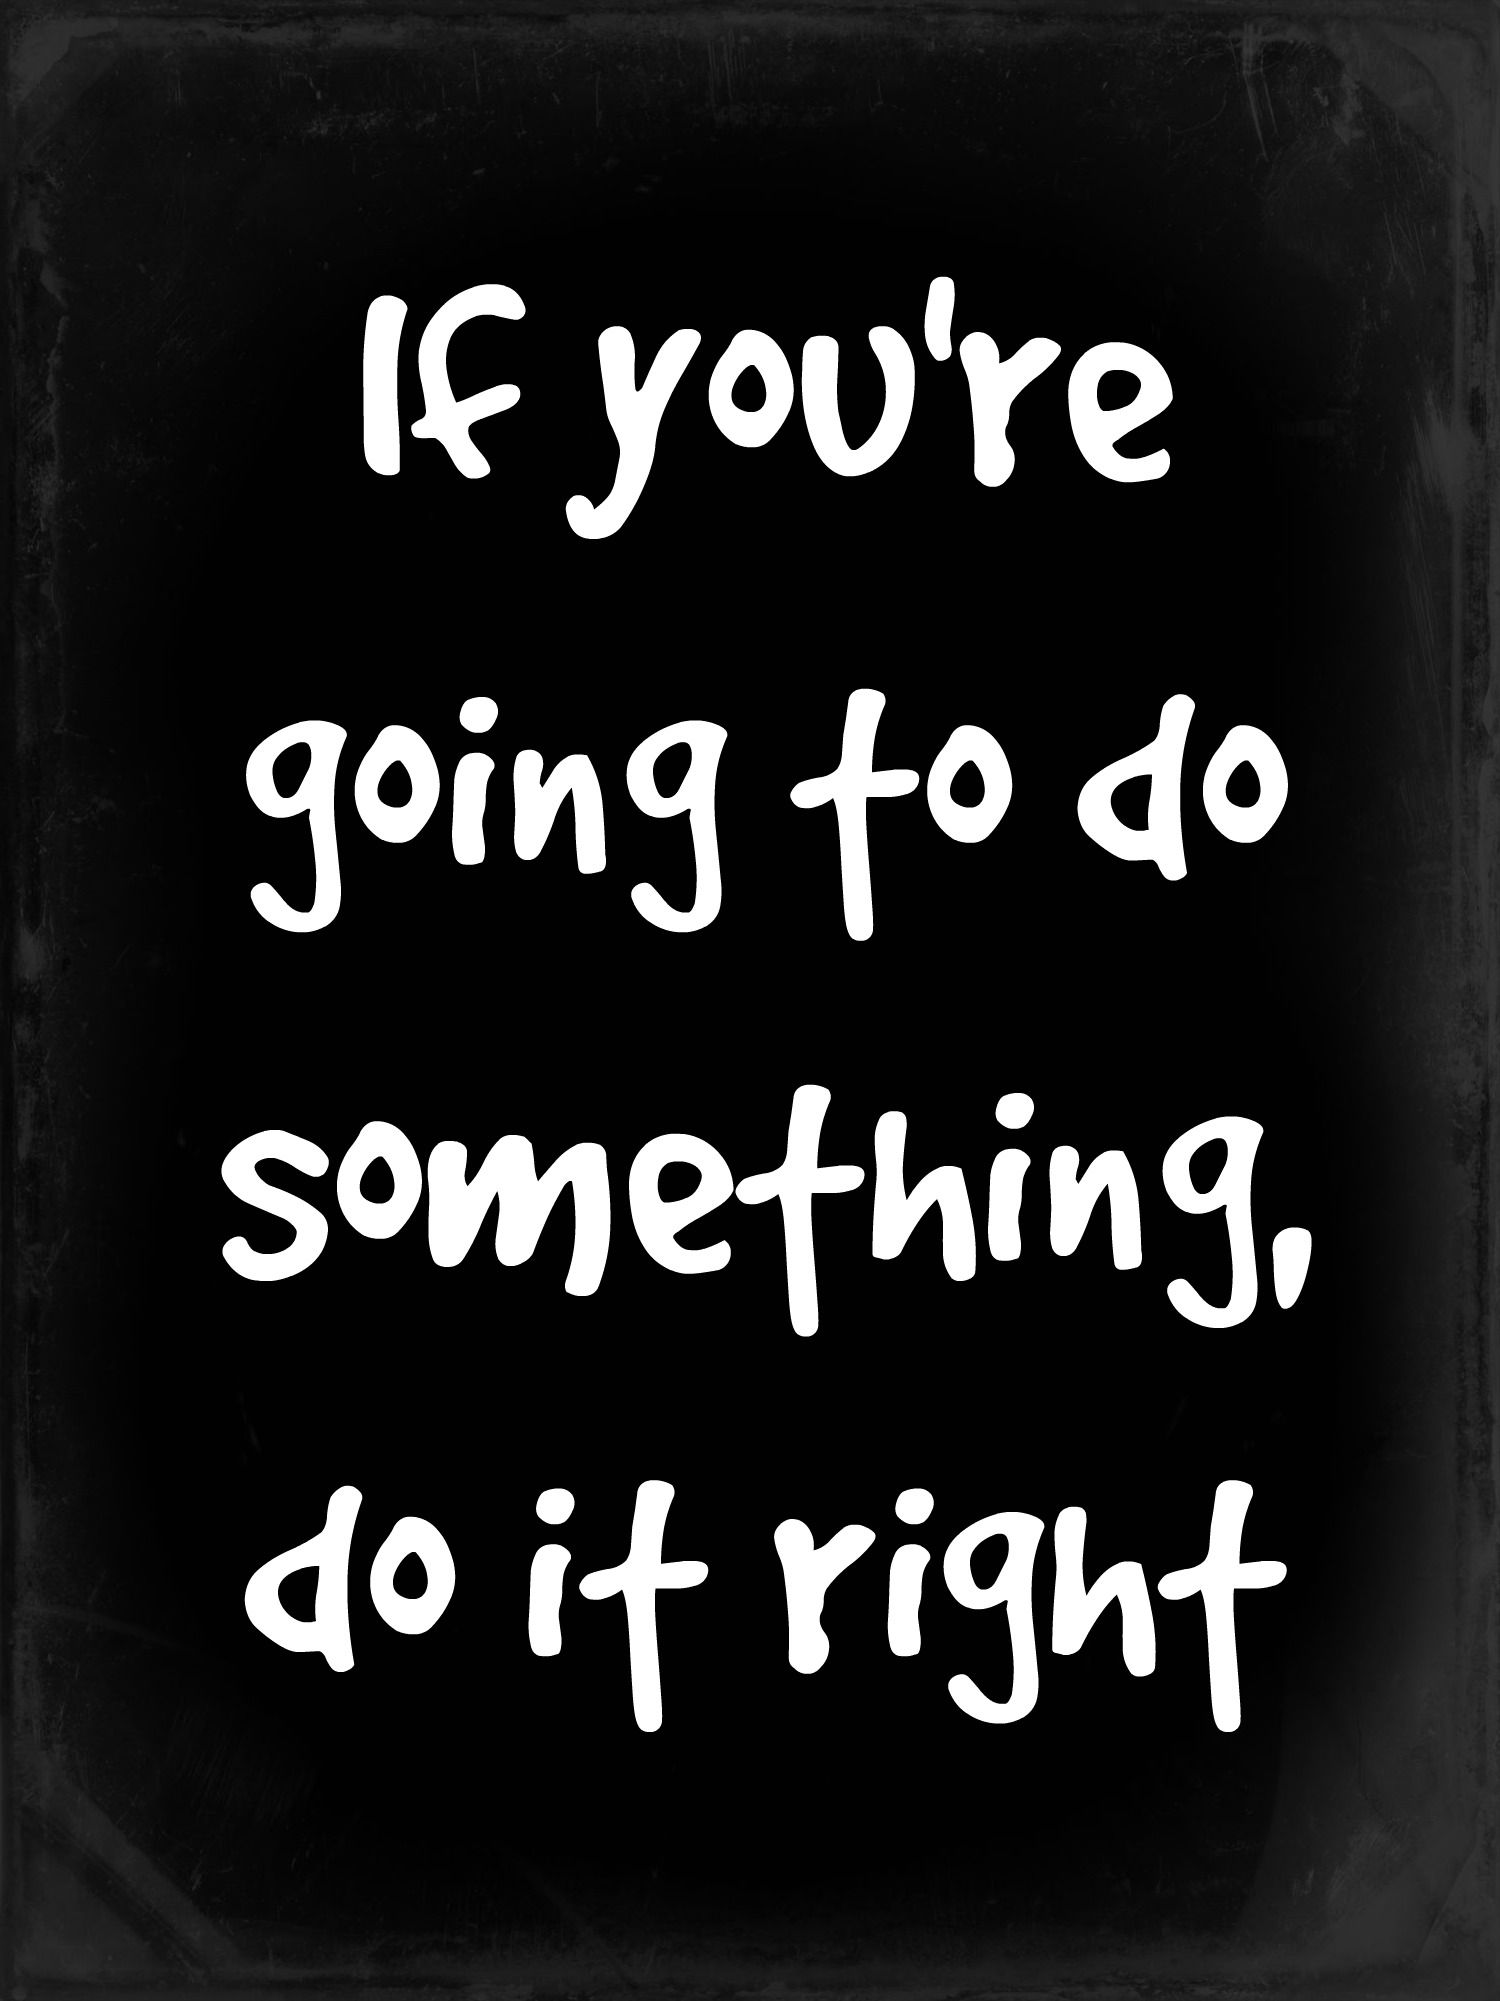 Cjism Day 13 If You Re Going To Do Something It Right Quoteoftheday Rulestoliveby Quote Of The What When Paraphrase